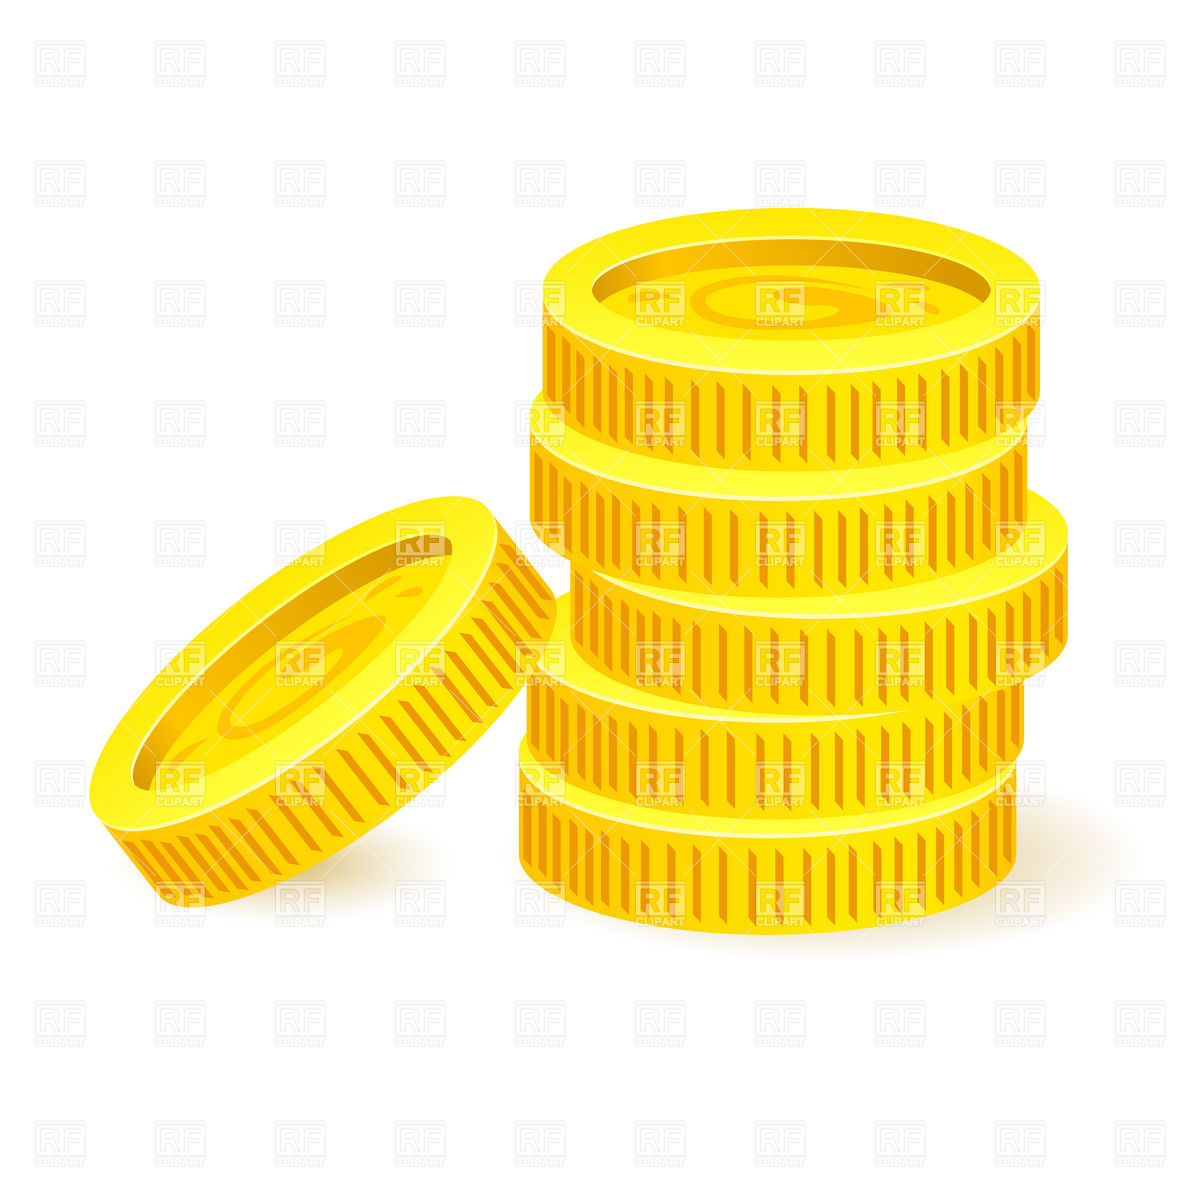 1200x1200 Pile Of Simple Golden Coins Vector Image Vector Artwork Of